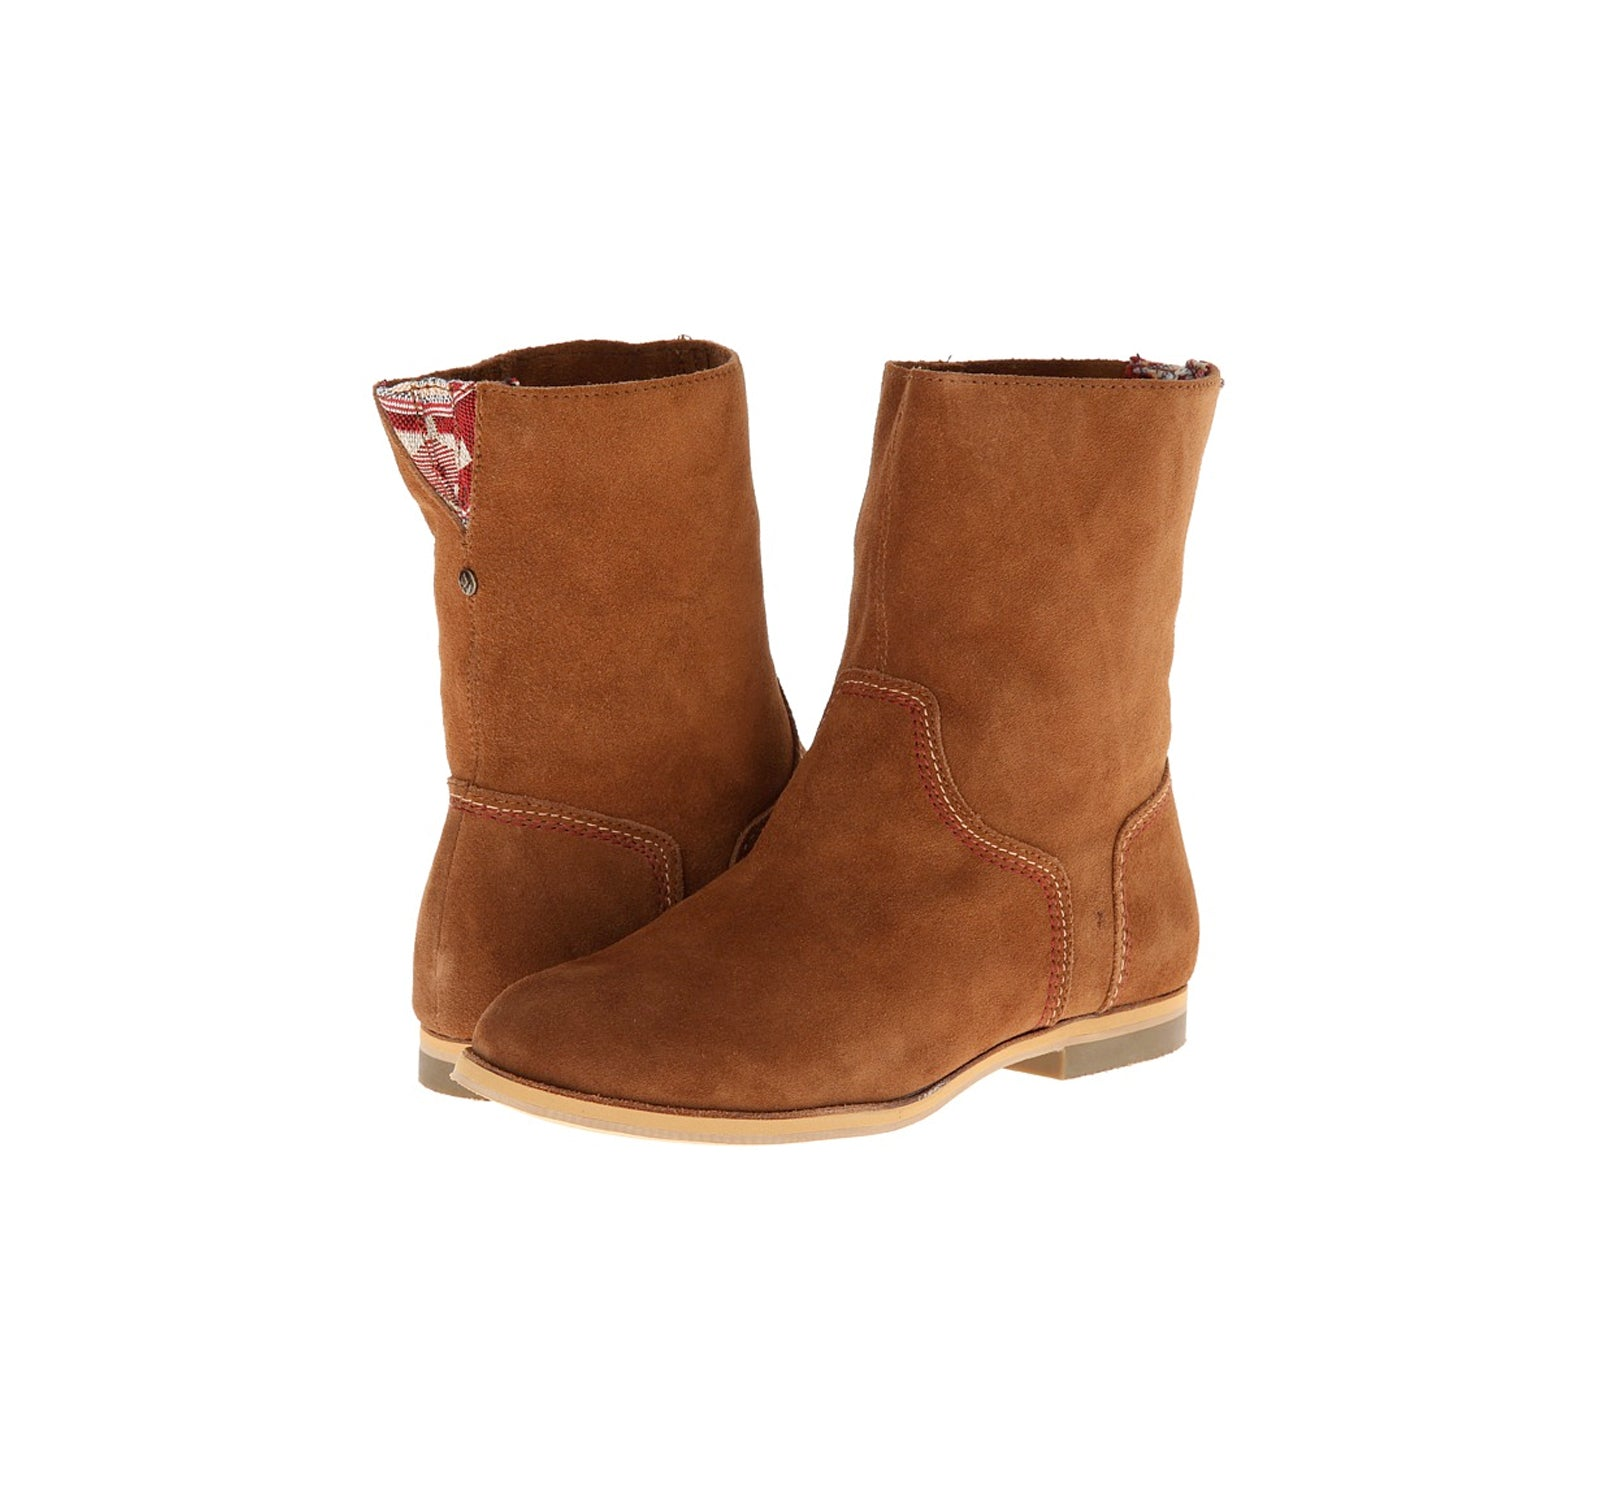 Reef Low Desert Women's Boots